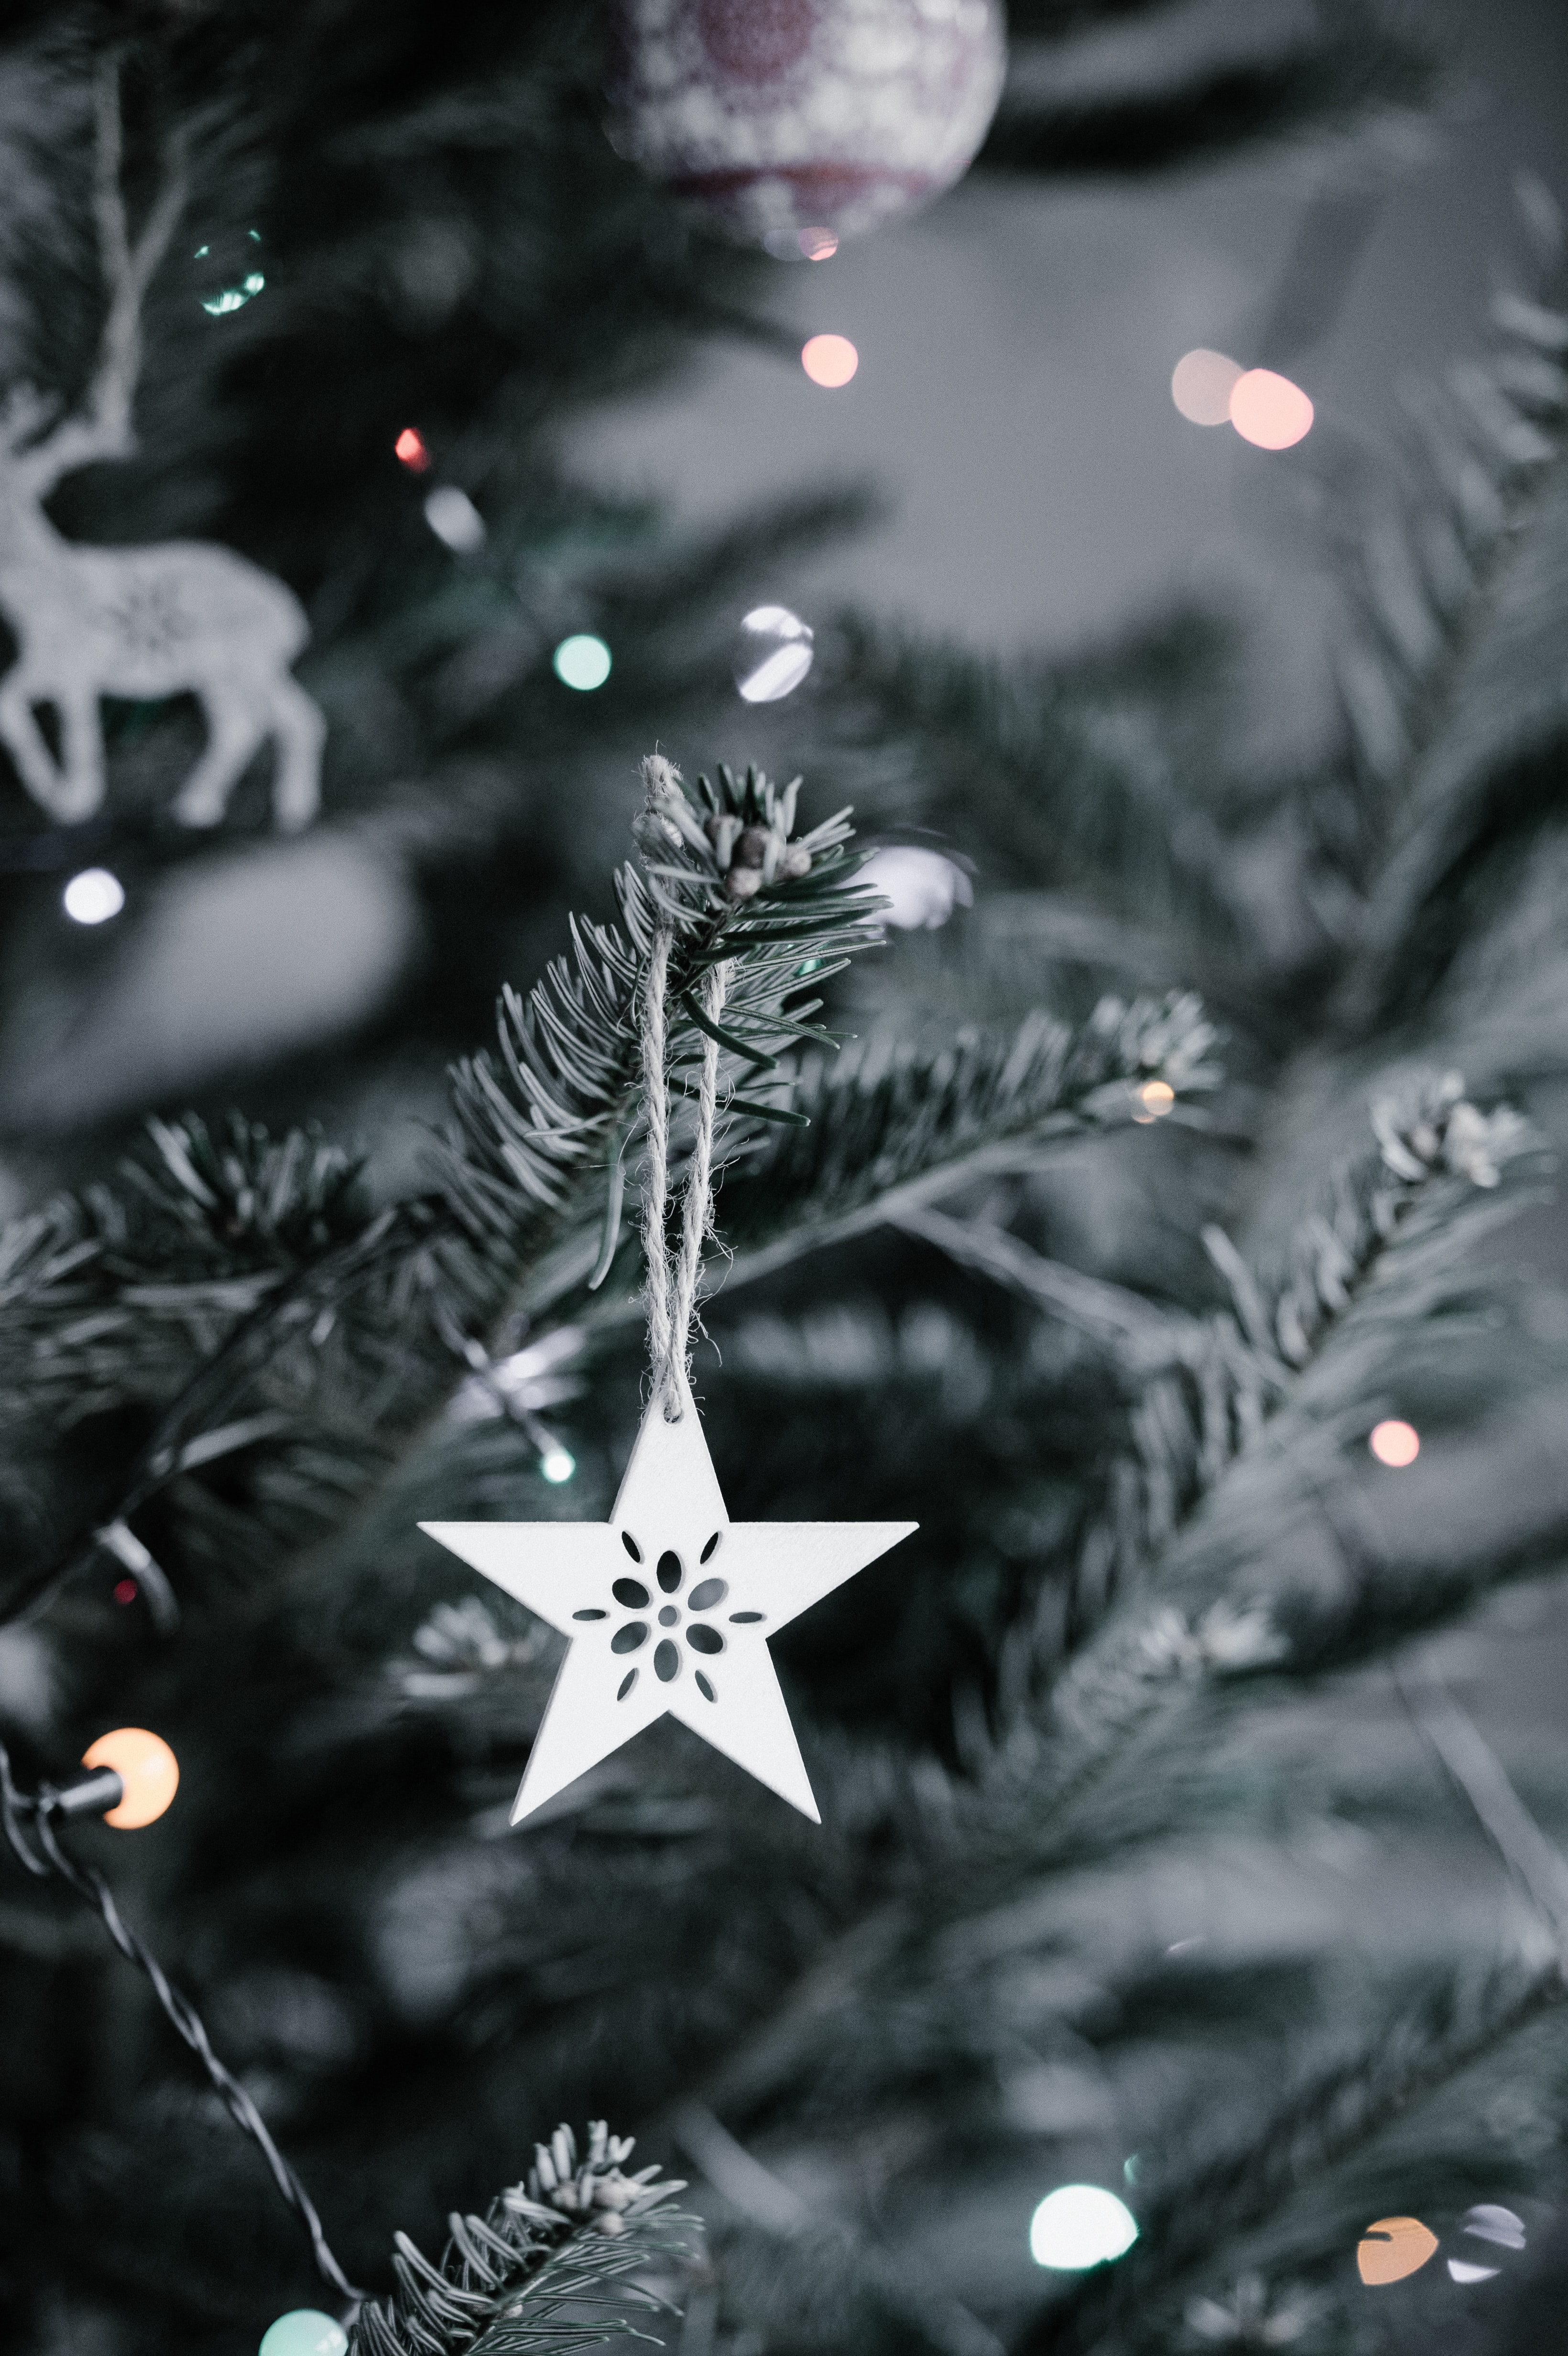 star Christmas ornament hanging in Christmas tree